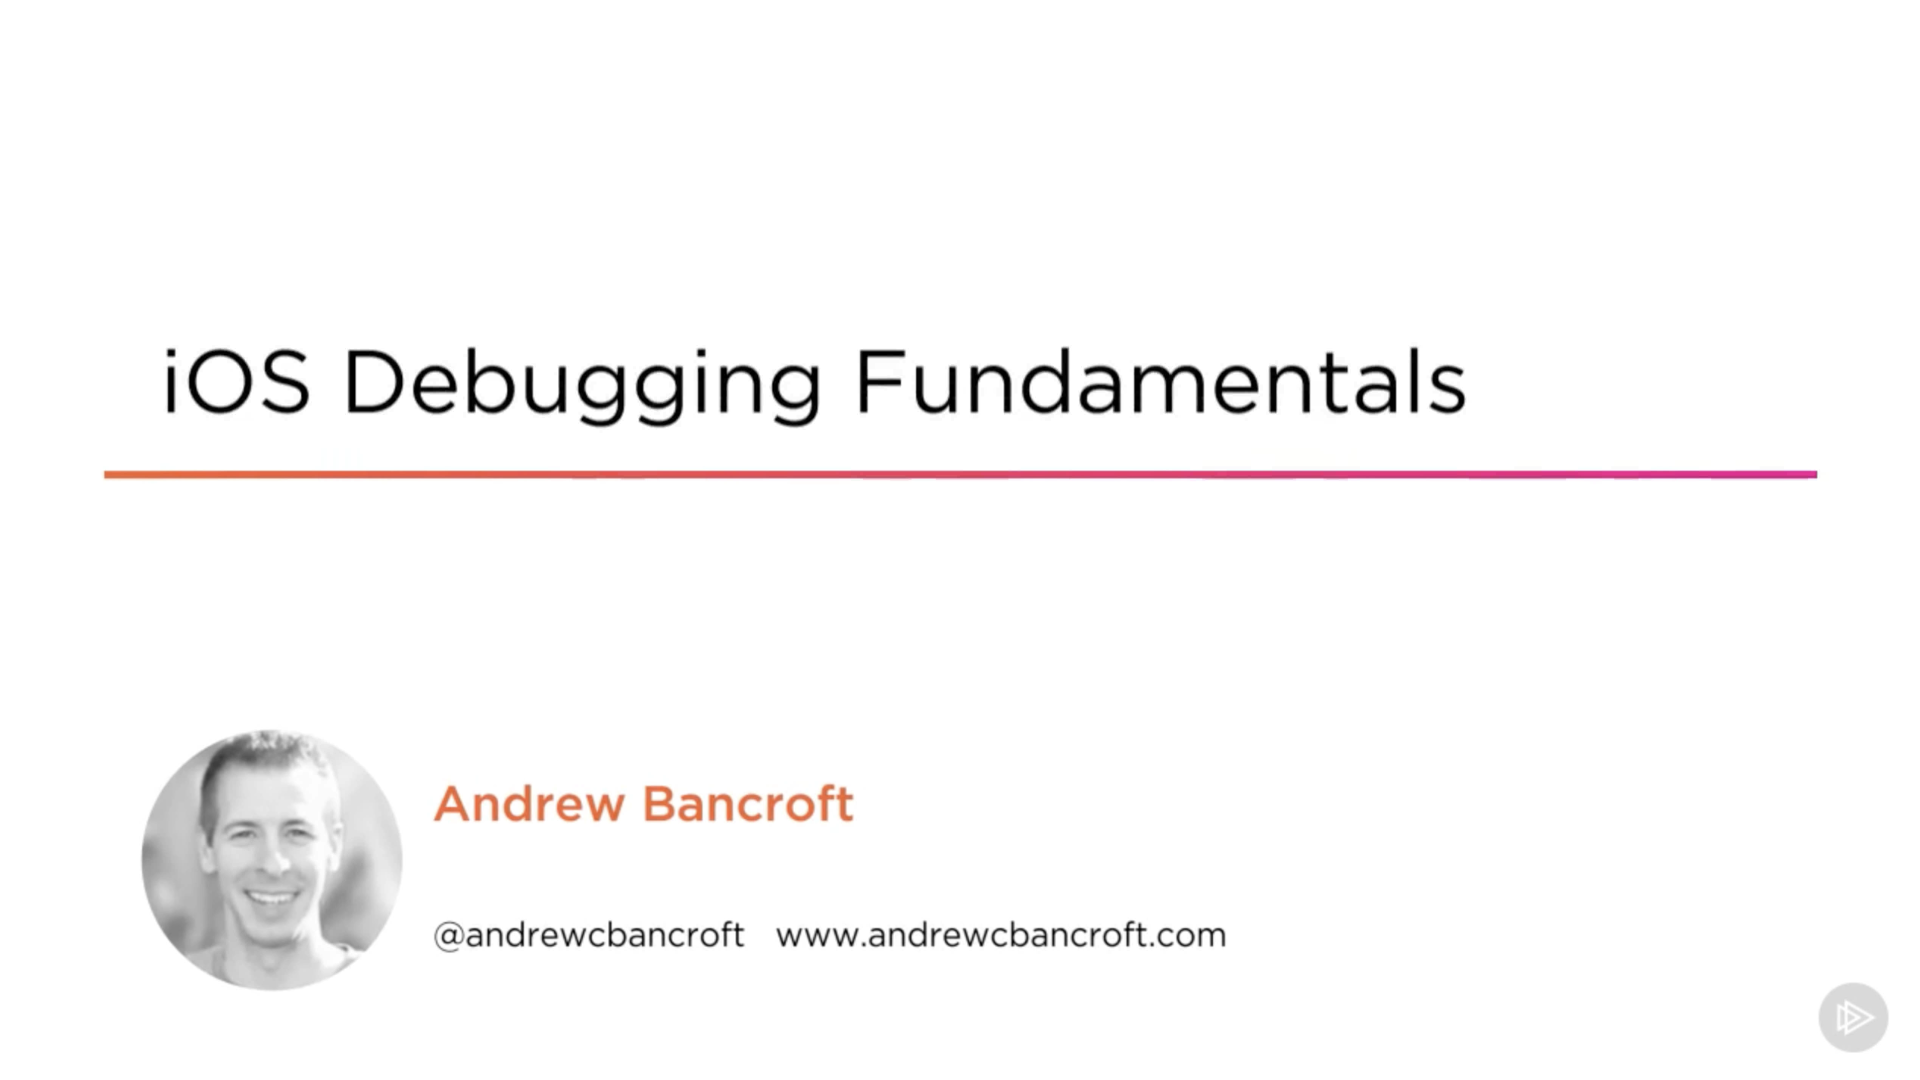 iOS Debugging Fundamentals